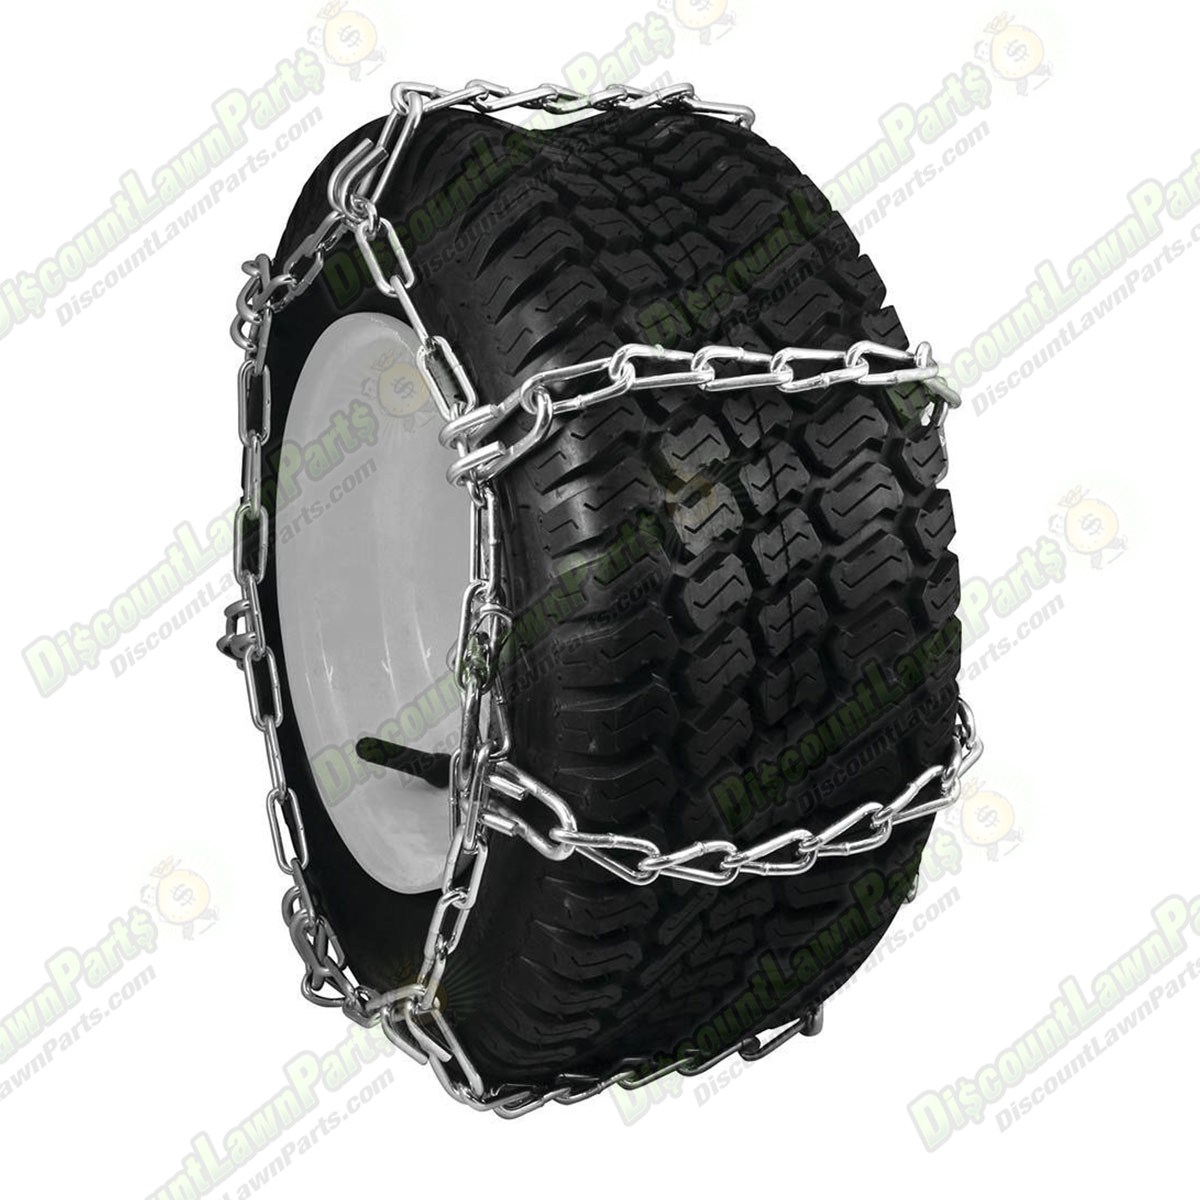 4 Link Tire Chain 20x10 00 8 20x10 00 10